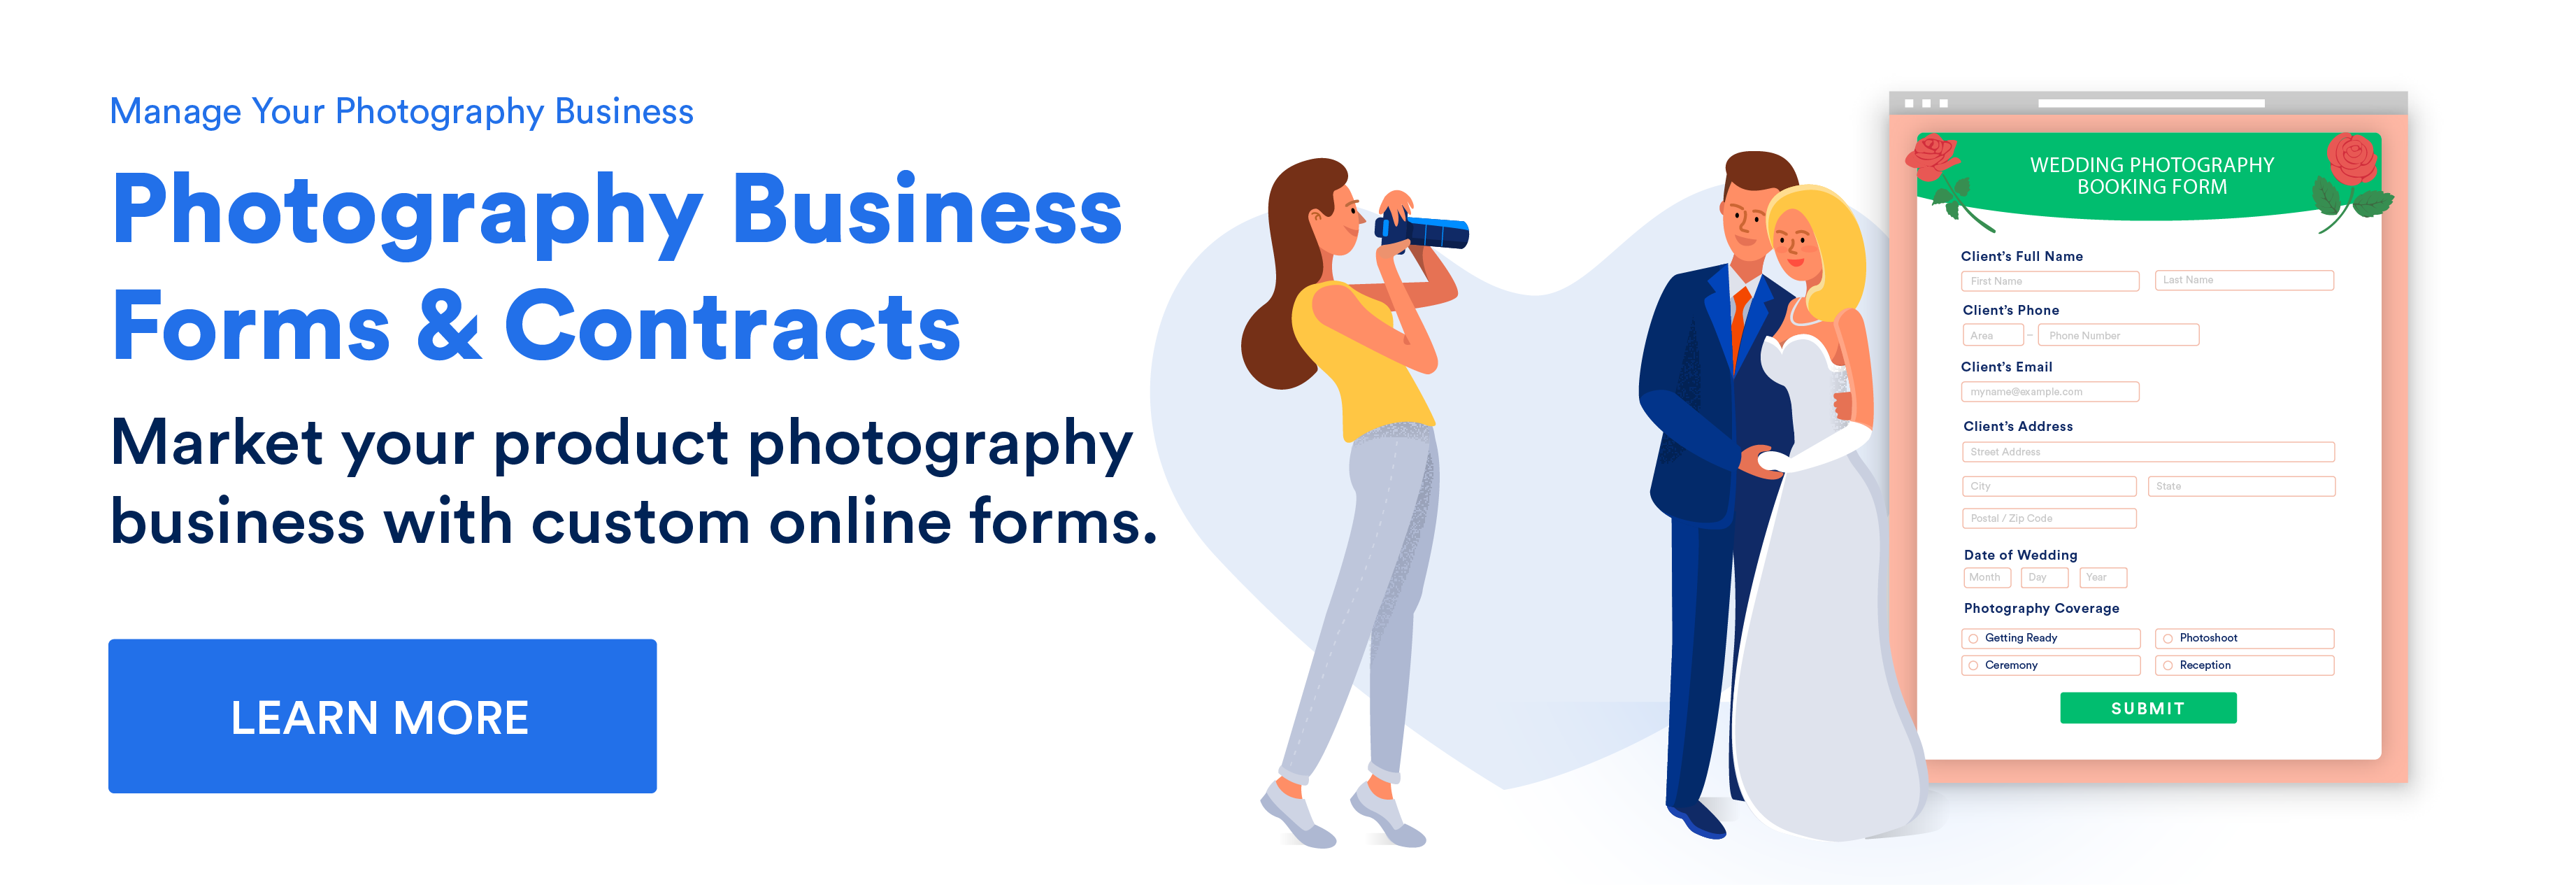 Market your product photography business with custom online forms.